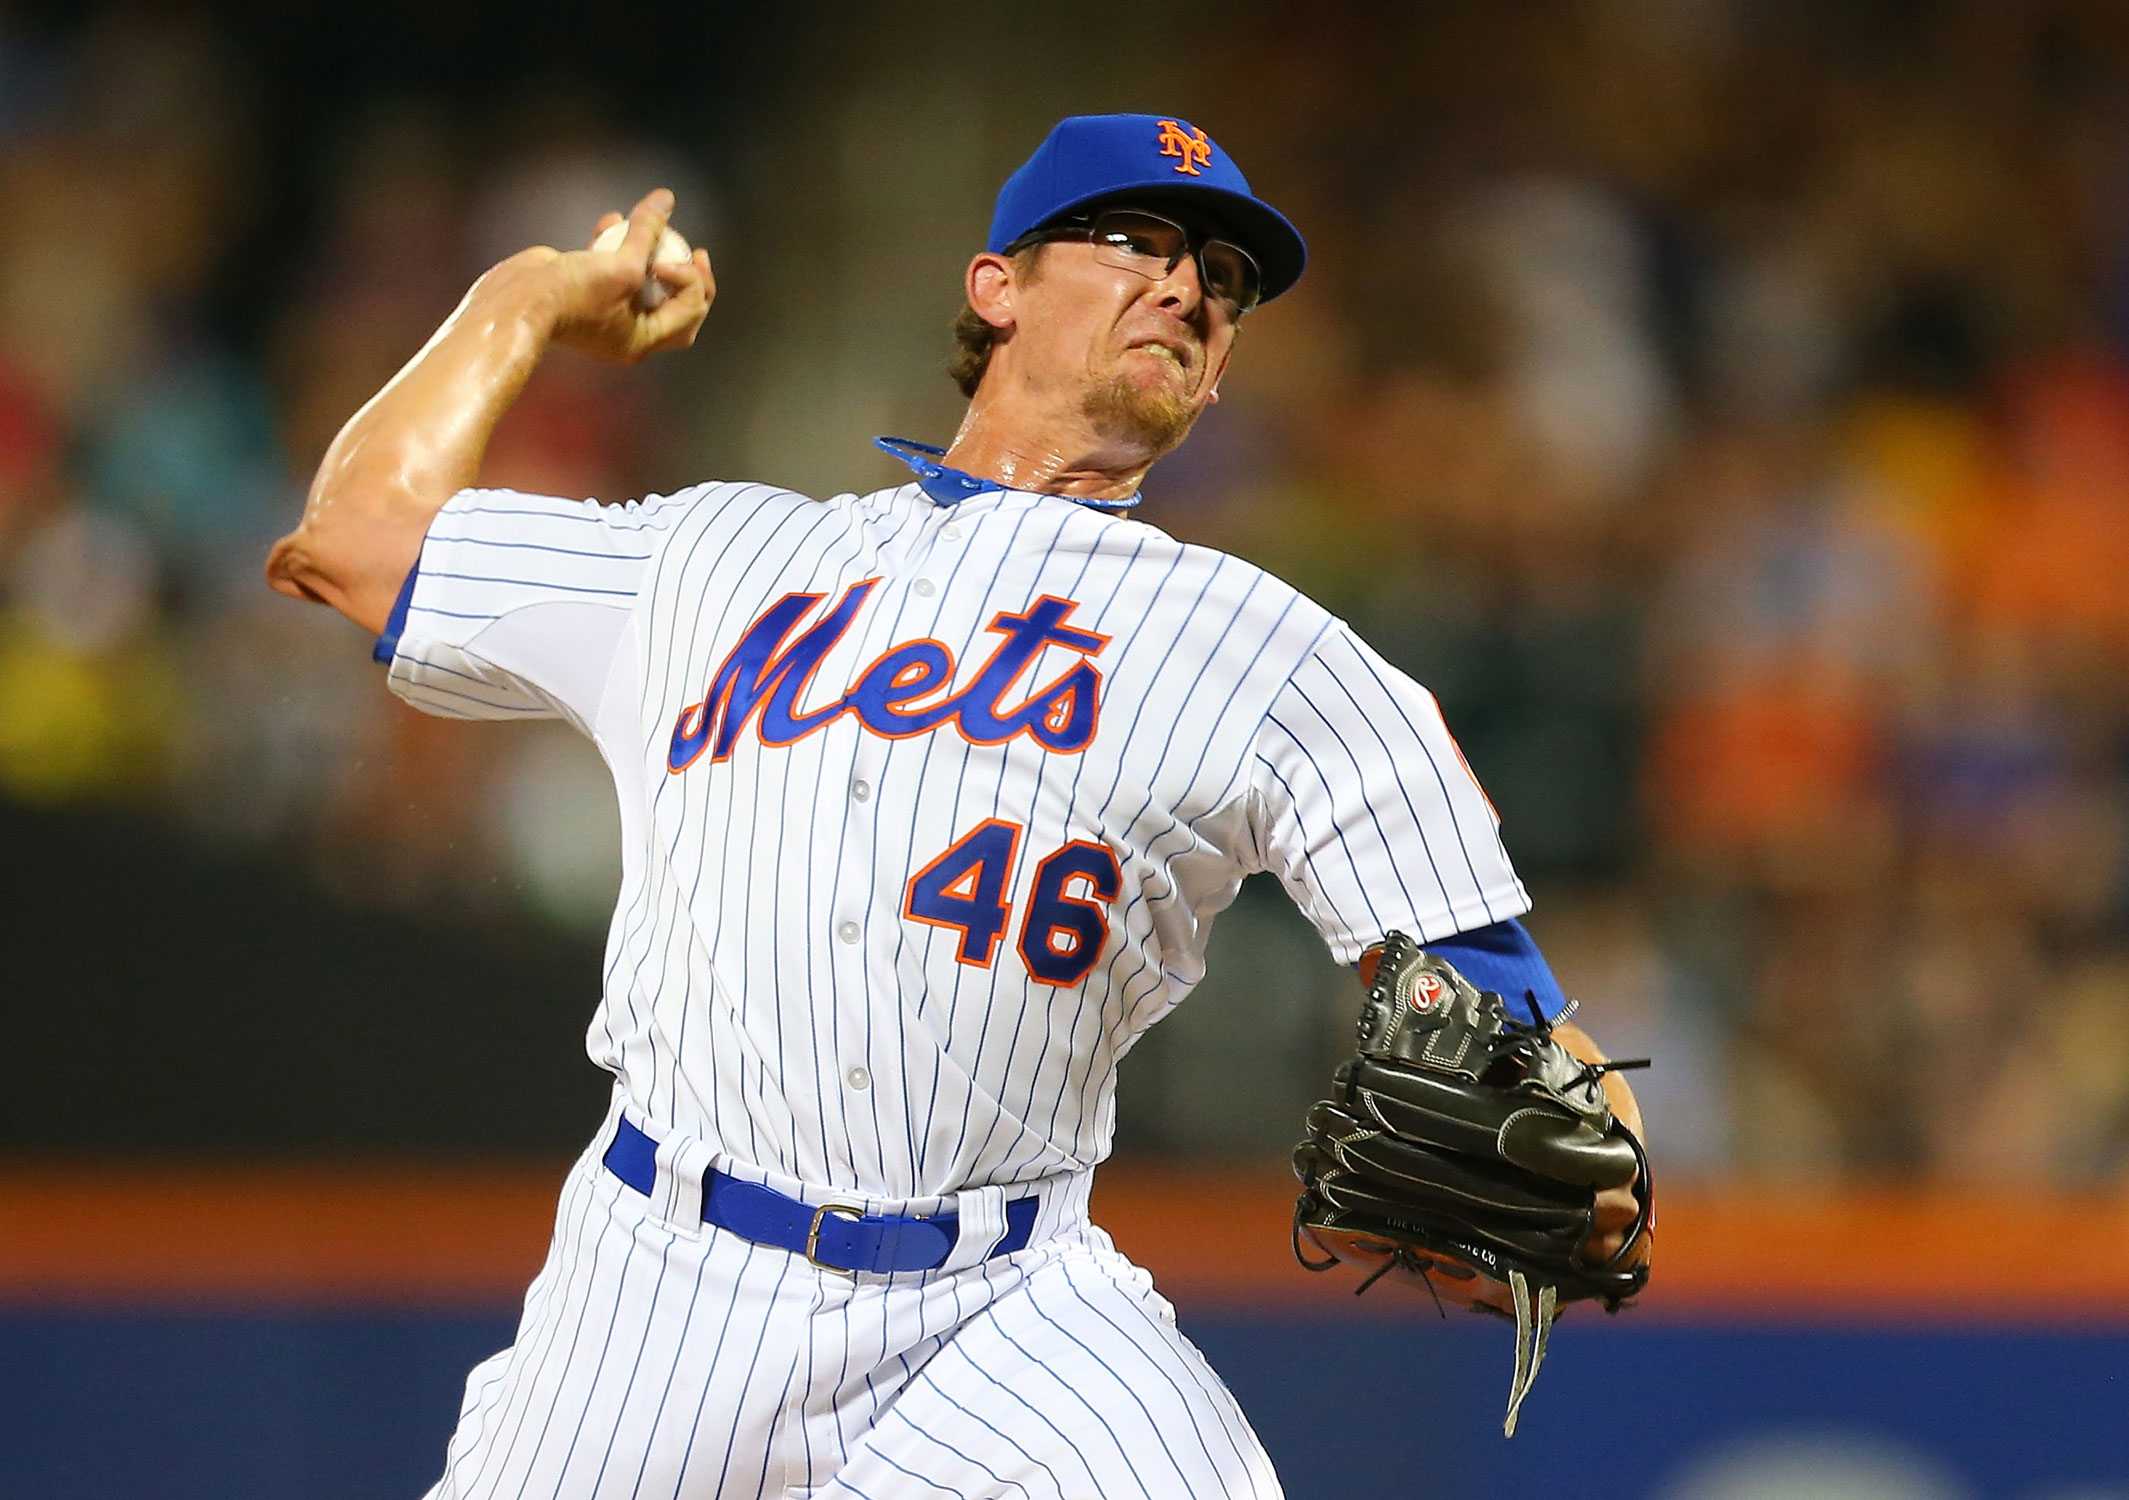 Clippard back at home in NL East